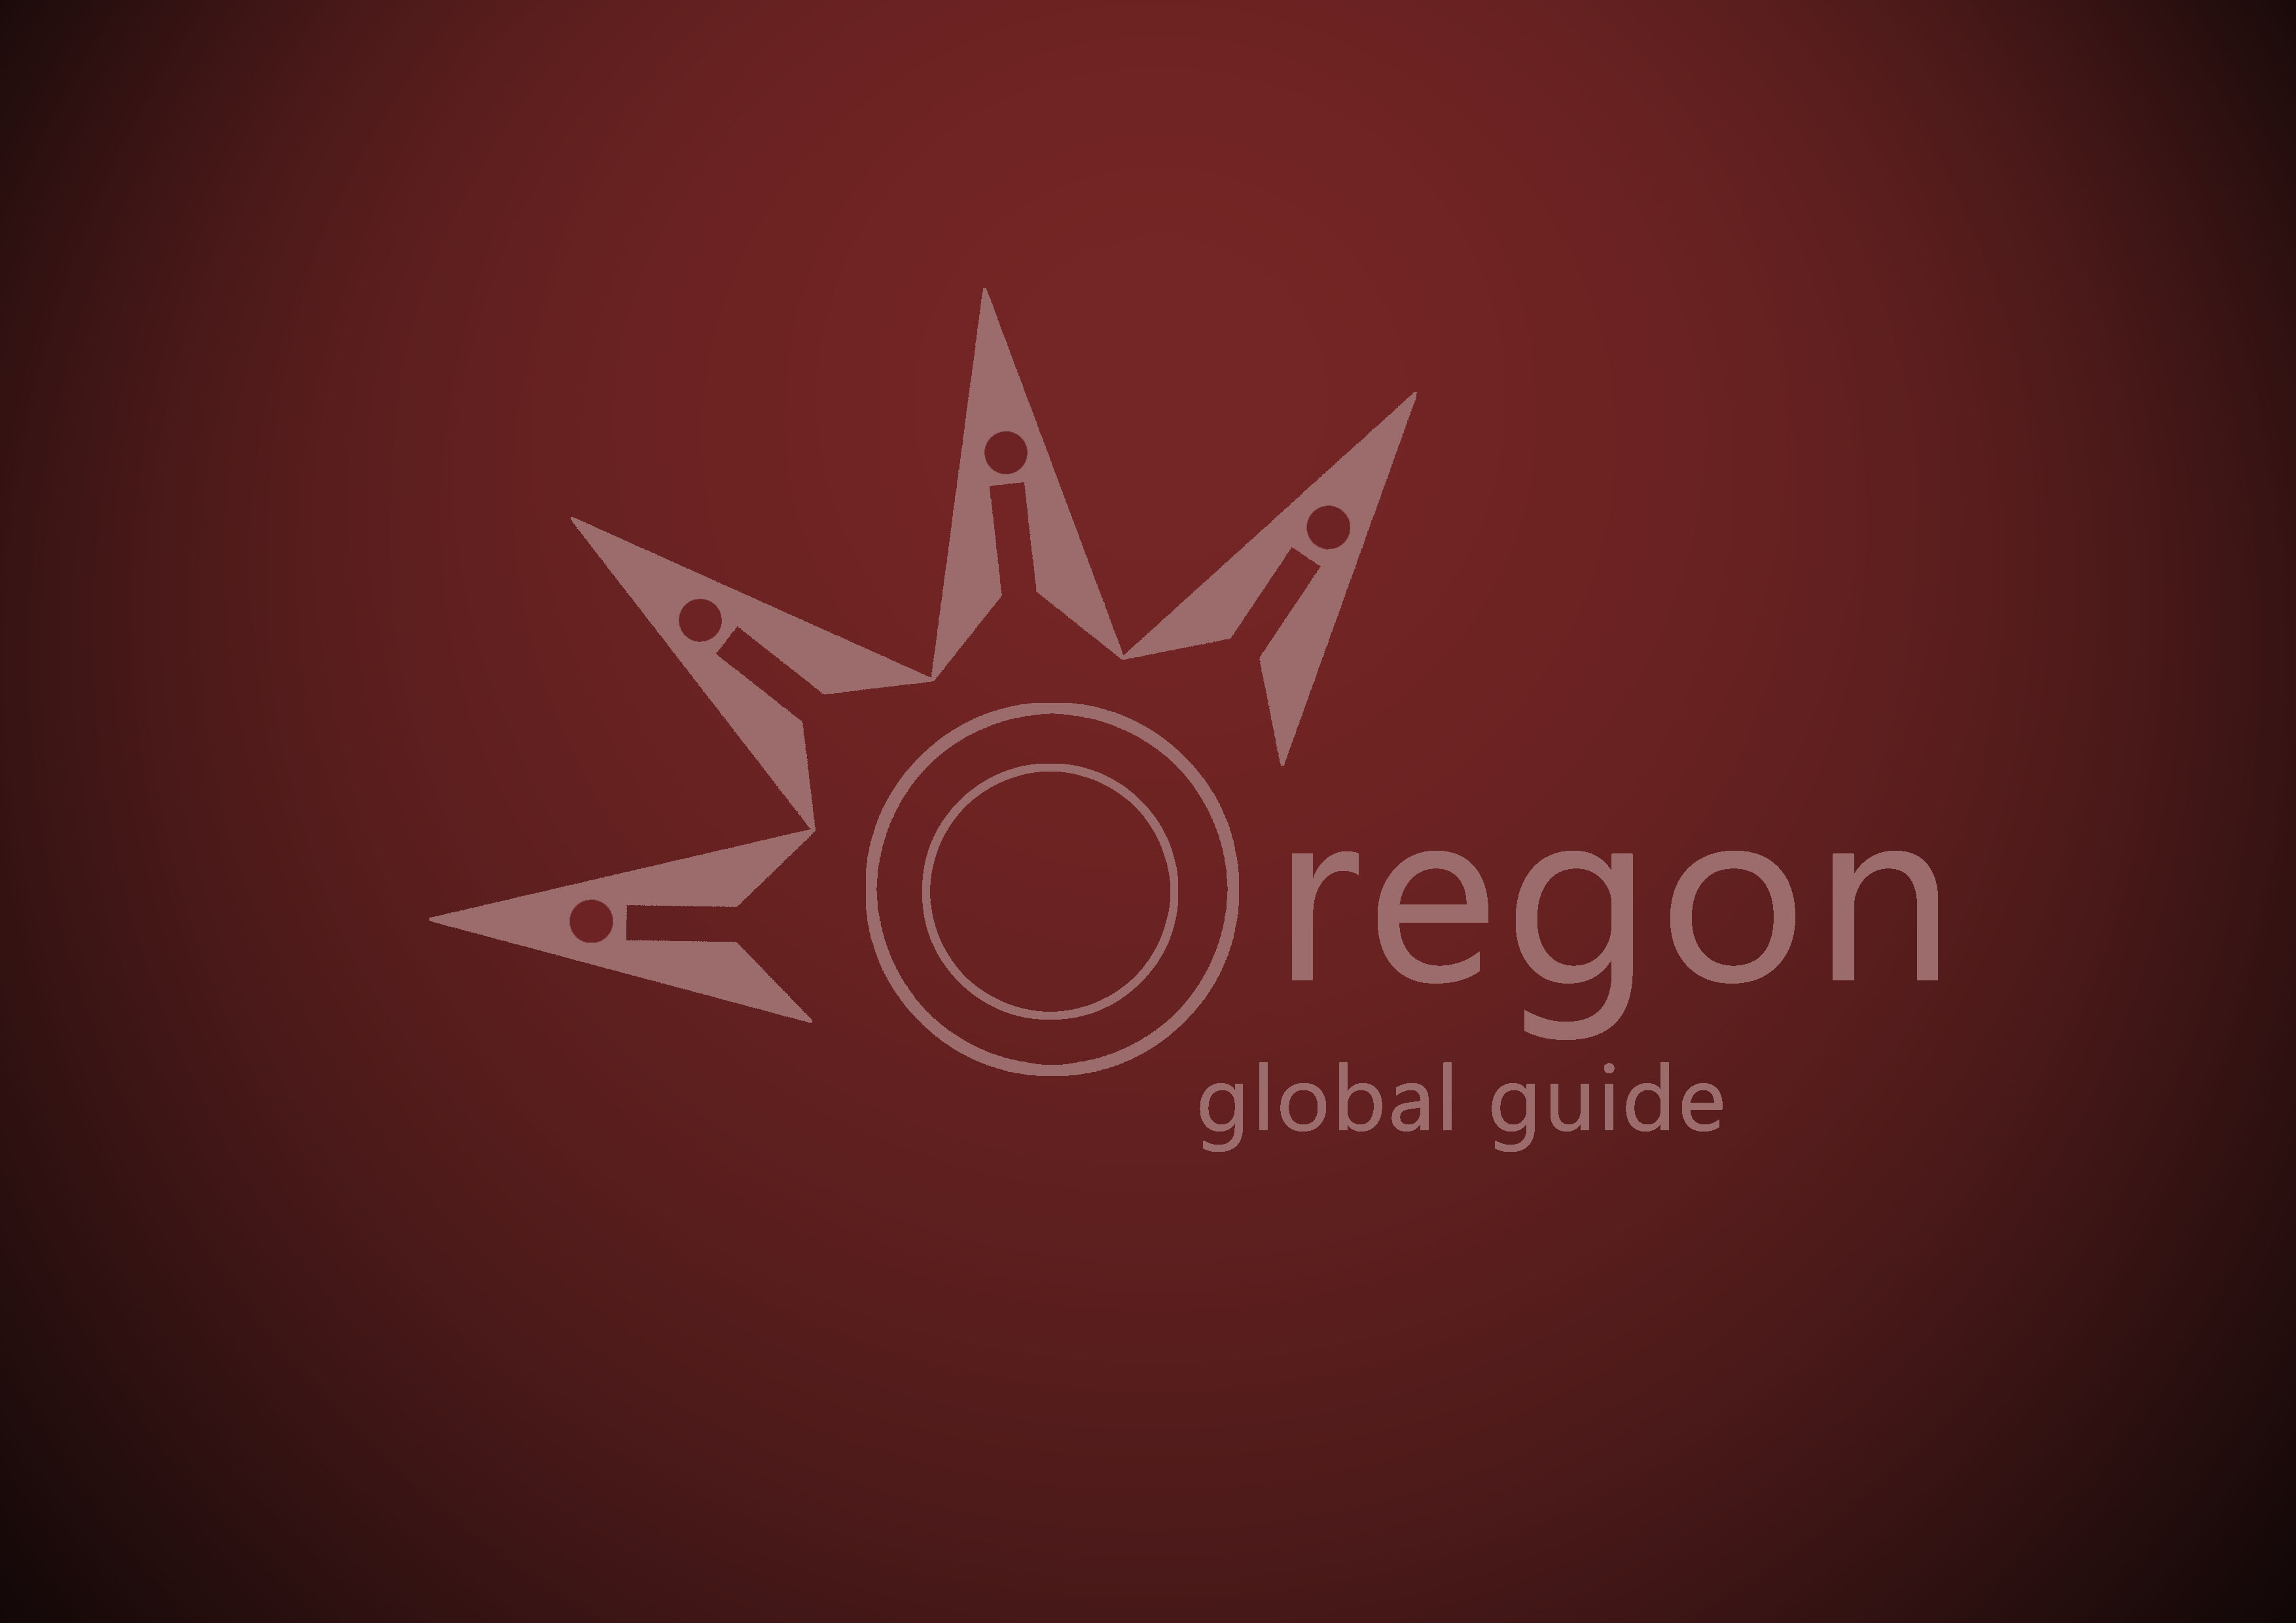 Logo Design by Firas Alsabbagh - Entry No. 38 in the Logo Design Contest New Logo Design for Oregon Global Guide.